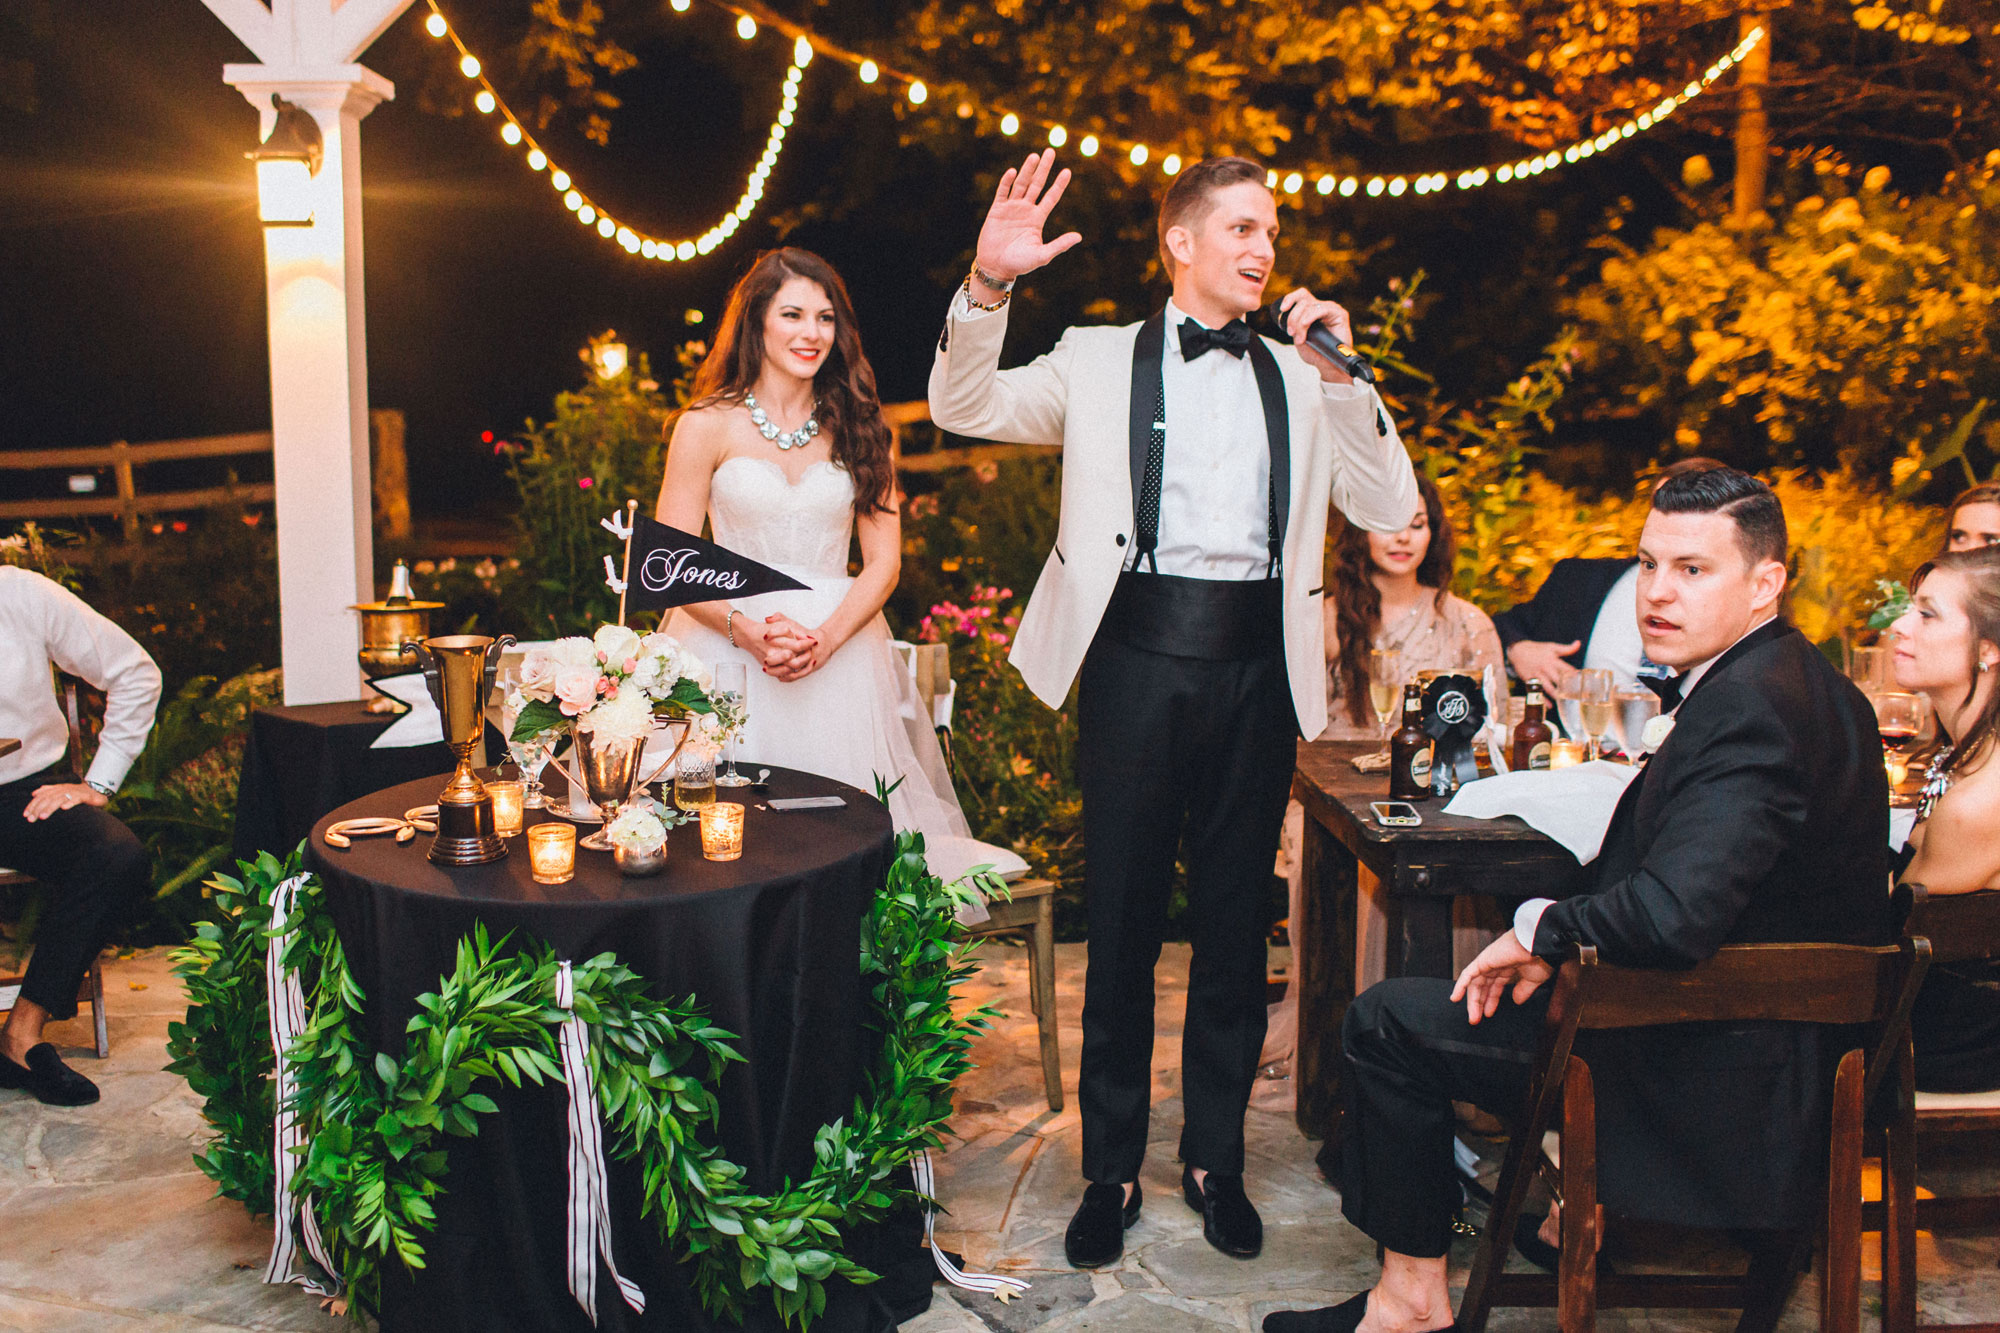 Me & Mr. Jones Wedding, Groom Thanking Guests, Table with Greenery, Black Tablecloths, Farm Tables, Rustic Glam Wedding Decor